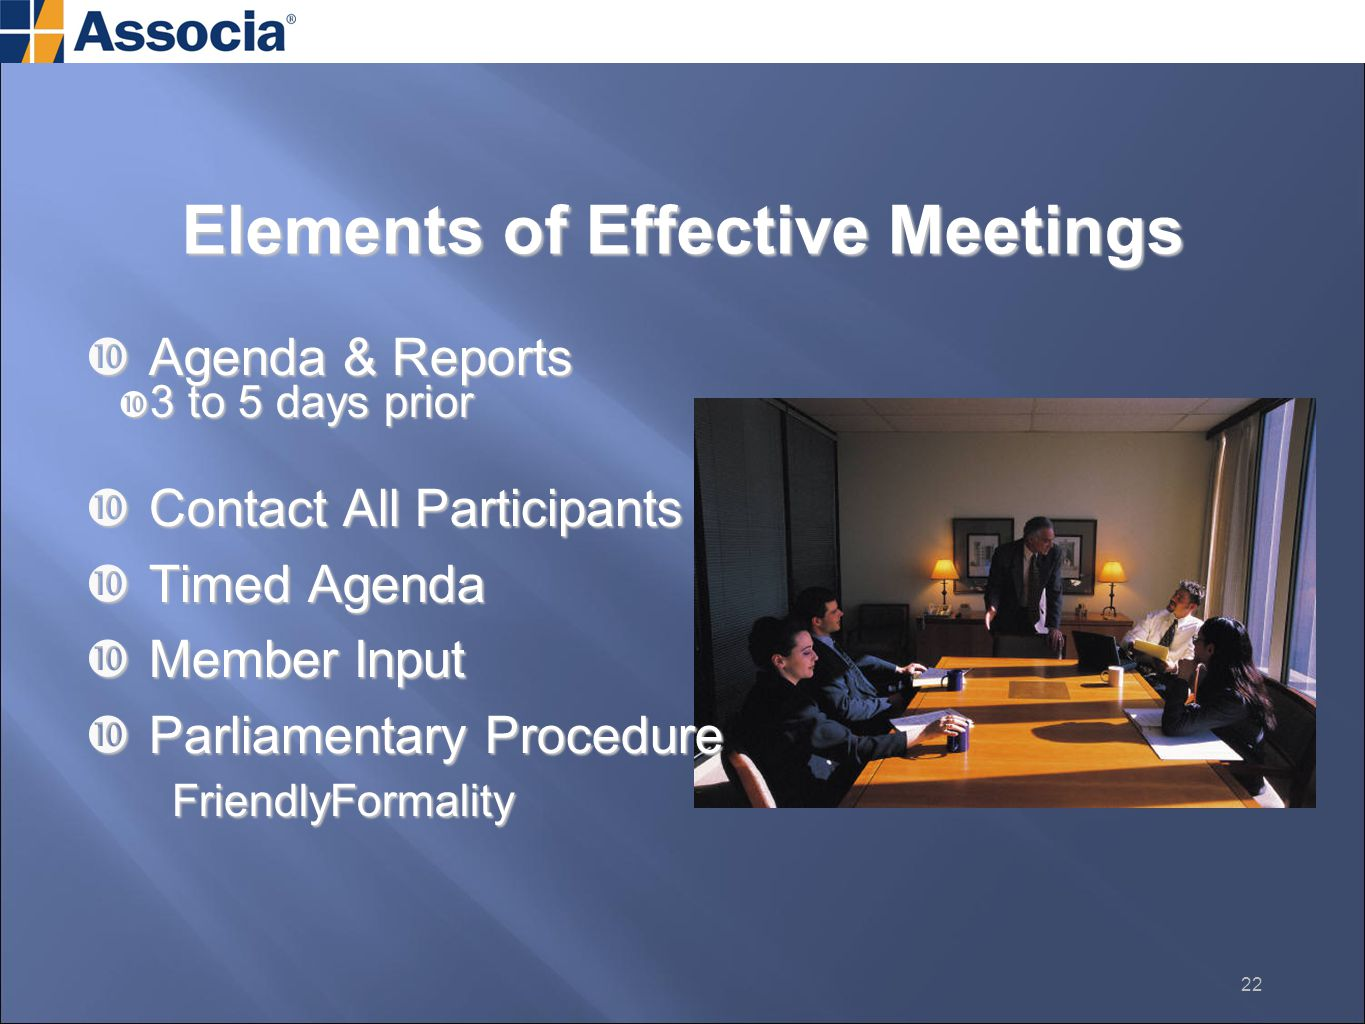 Elements of Effective Meetings  Agenda & Reports  3 to 5 days prior  Contact All Participants  Timed Agenda  Member Input  Parliamentary Procedure FriendlyFormality FriendlyFormality 22